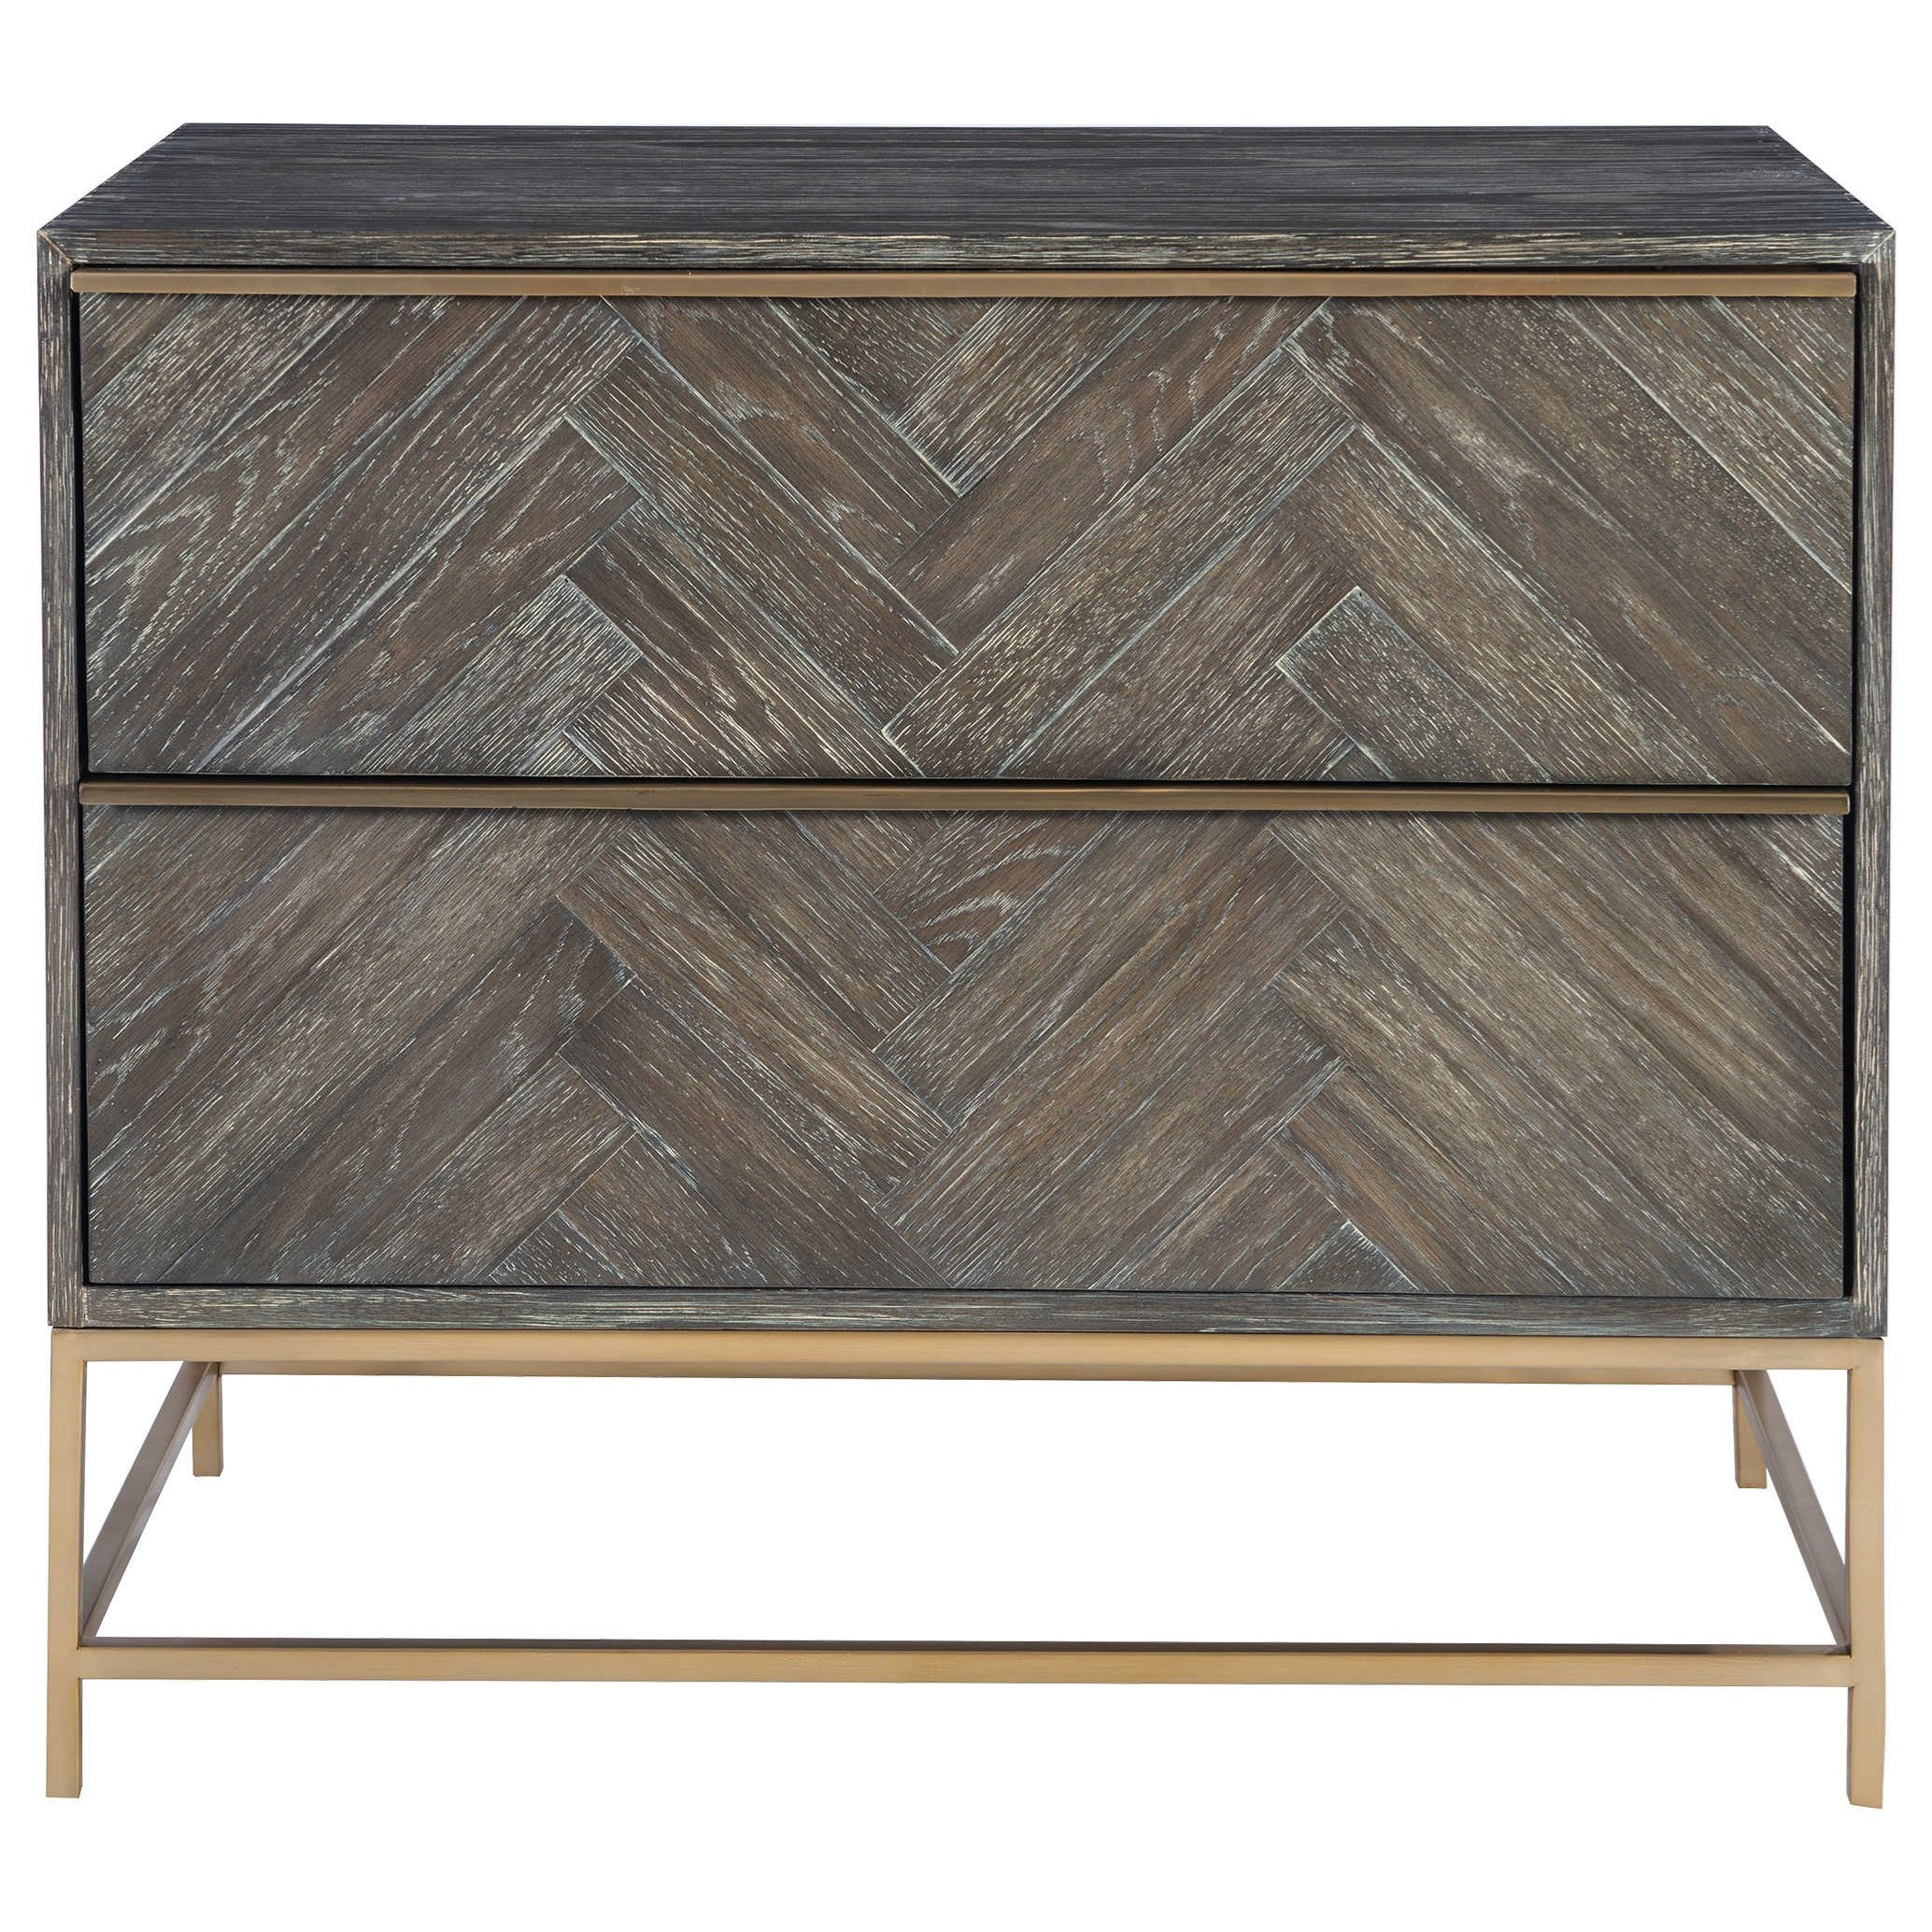 Accent Furniture - Chests Armistead Dark Walnut Drawer Chest by Uttermost at Factory Direct Furniture